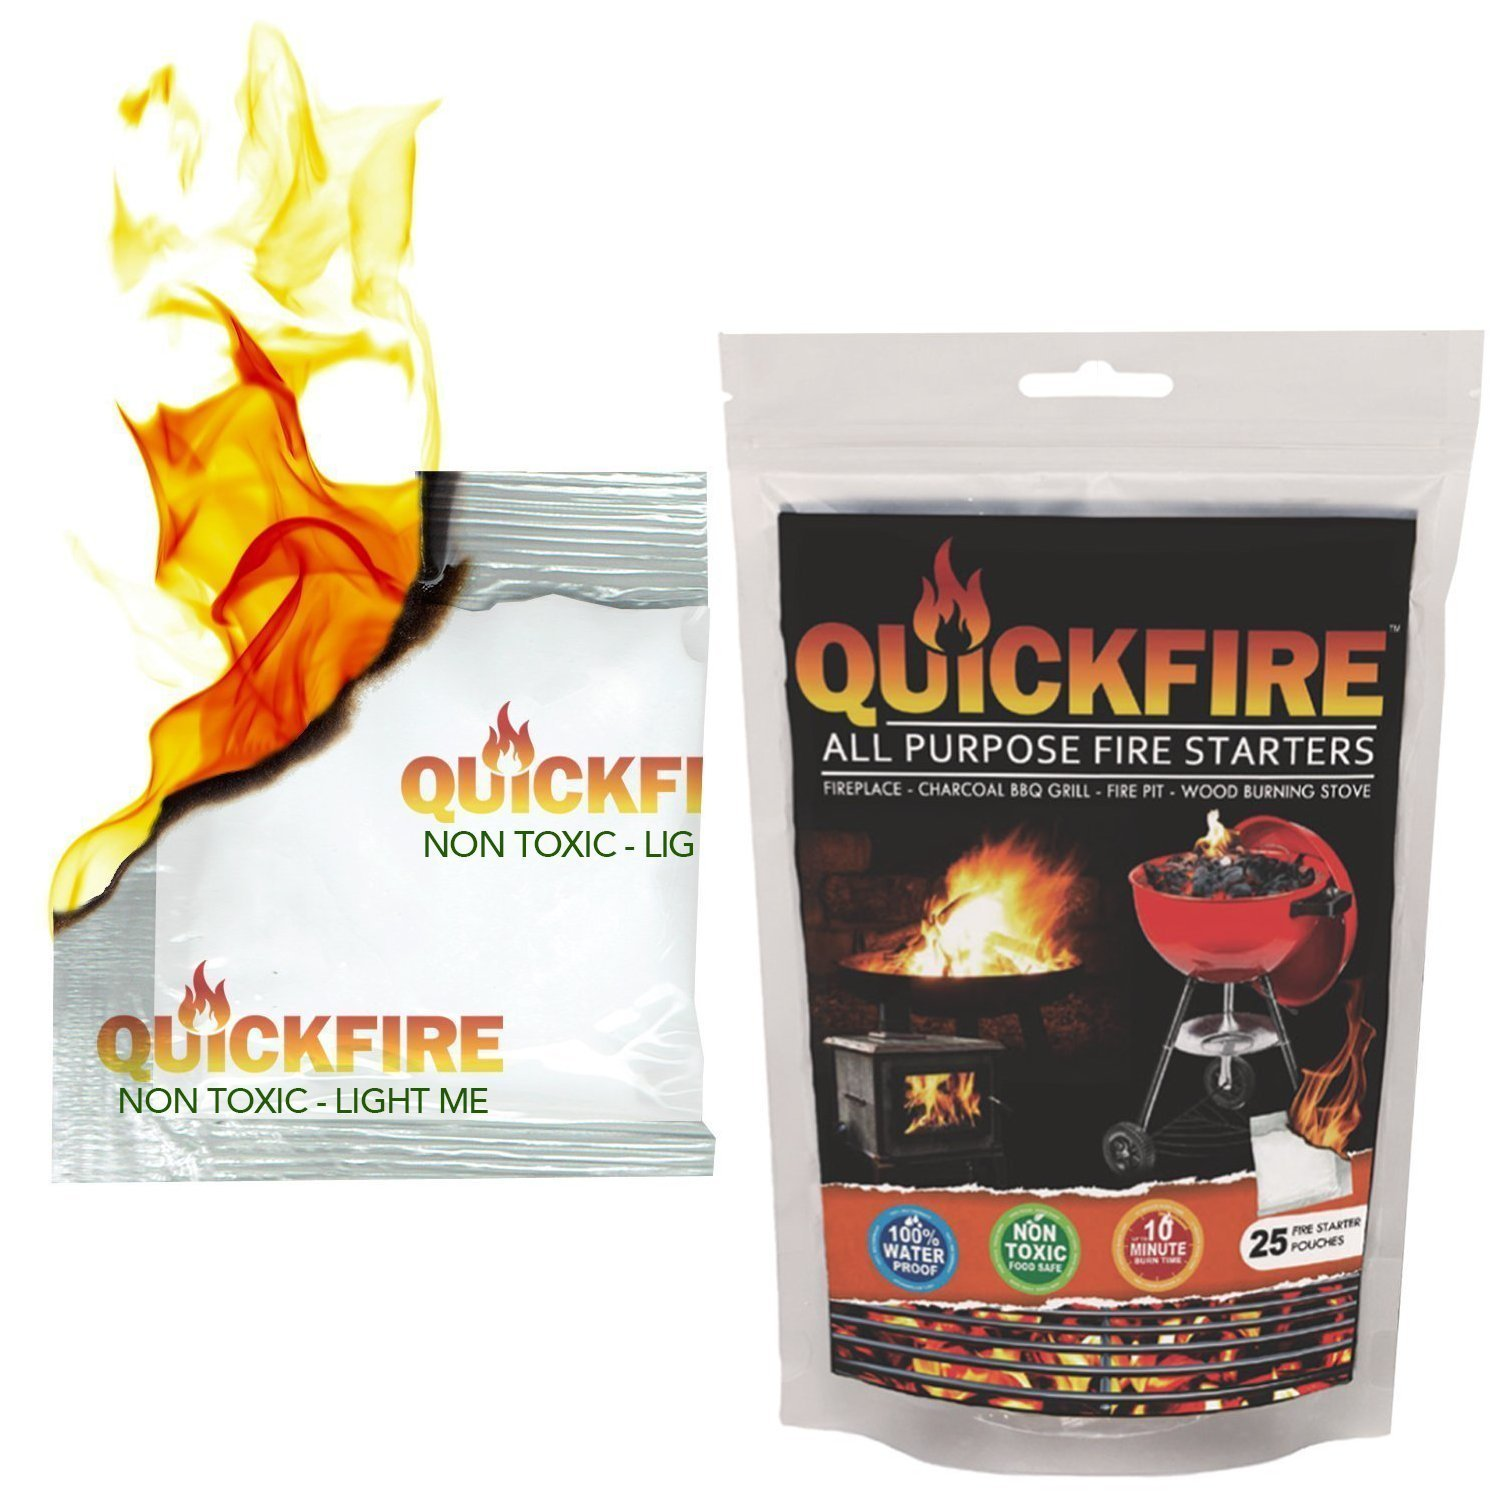 QuickFire, Instant Fire Starters. Voted #1 Camping And Charcoal BBQ Fire Starter of 2016. Waterproof, Odorless And Non-Toxic. (25pk) by Quickfire